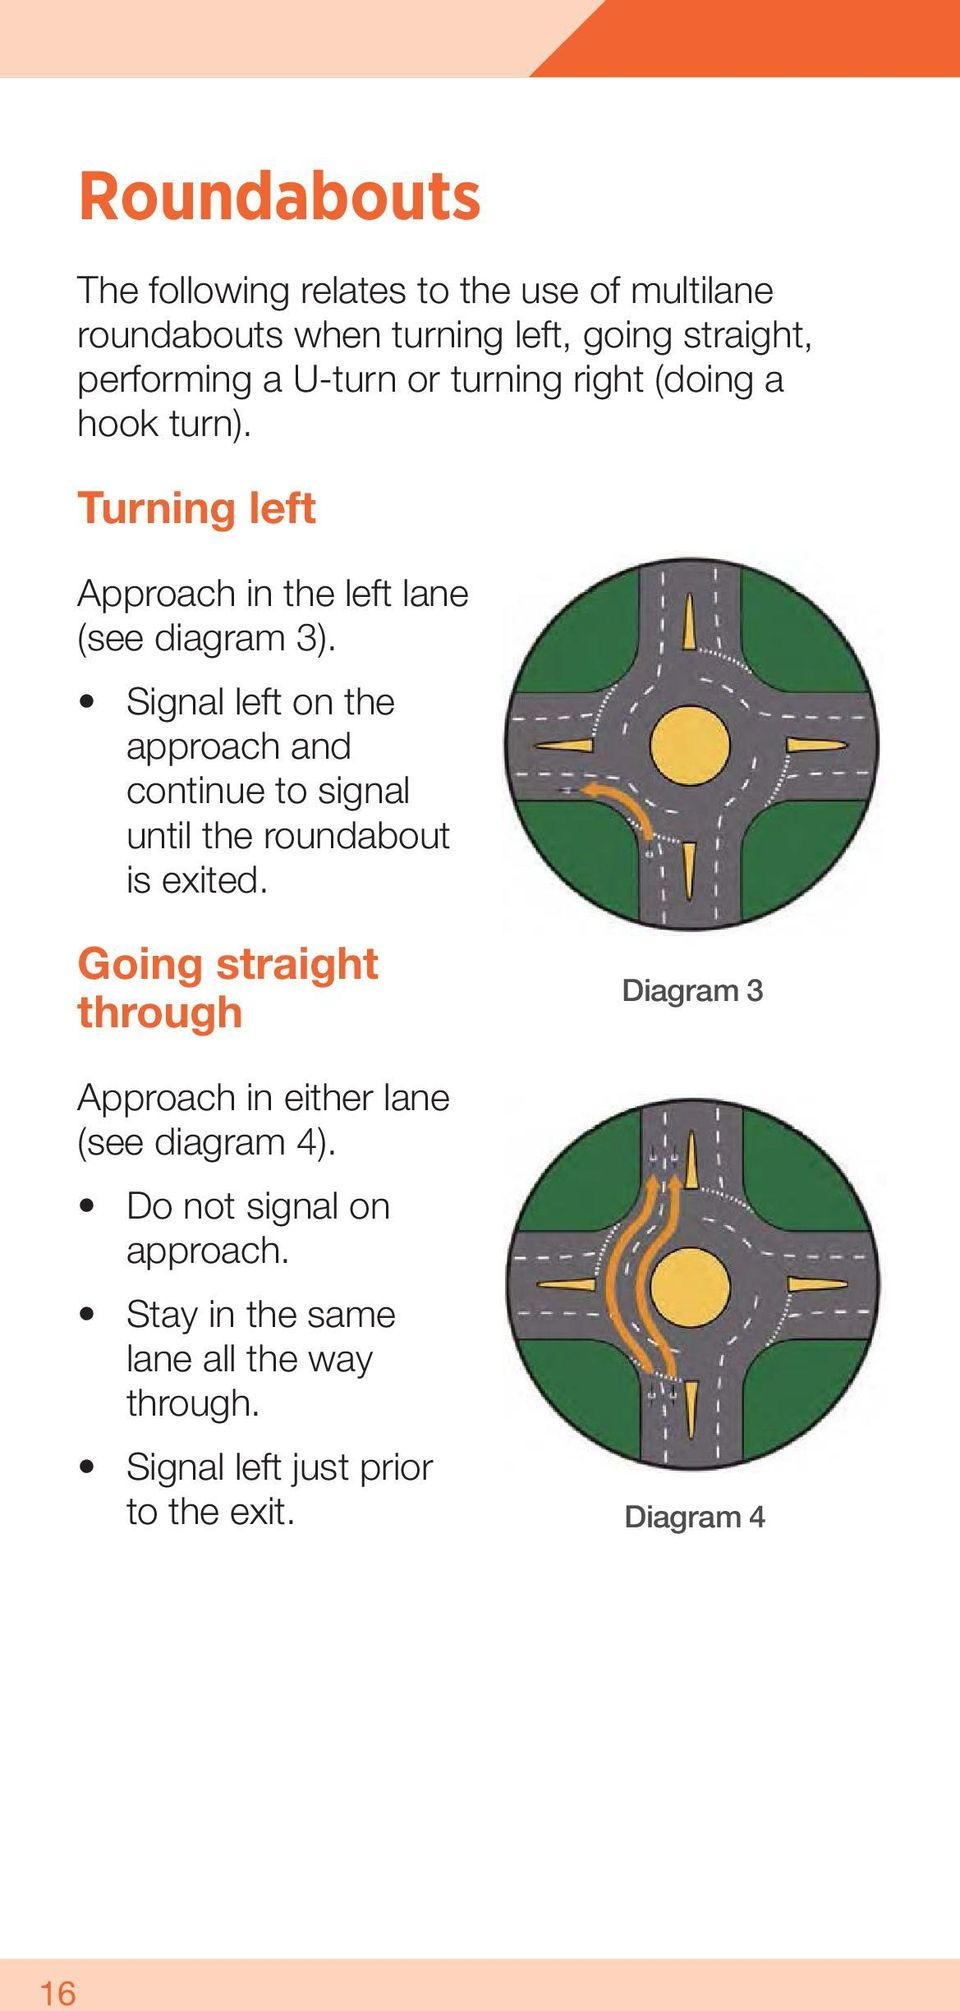 Signal left on the approach and continue to signal until the roundabout is exited.